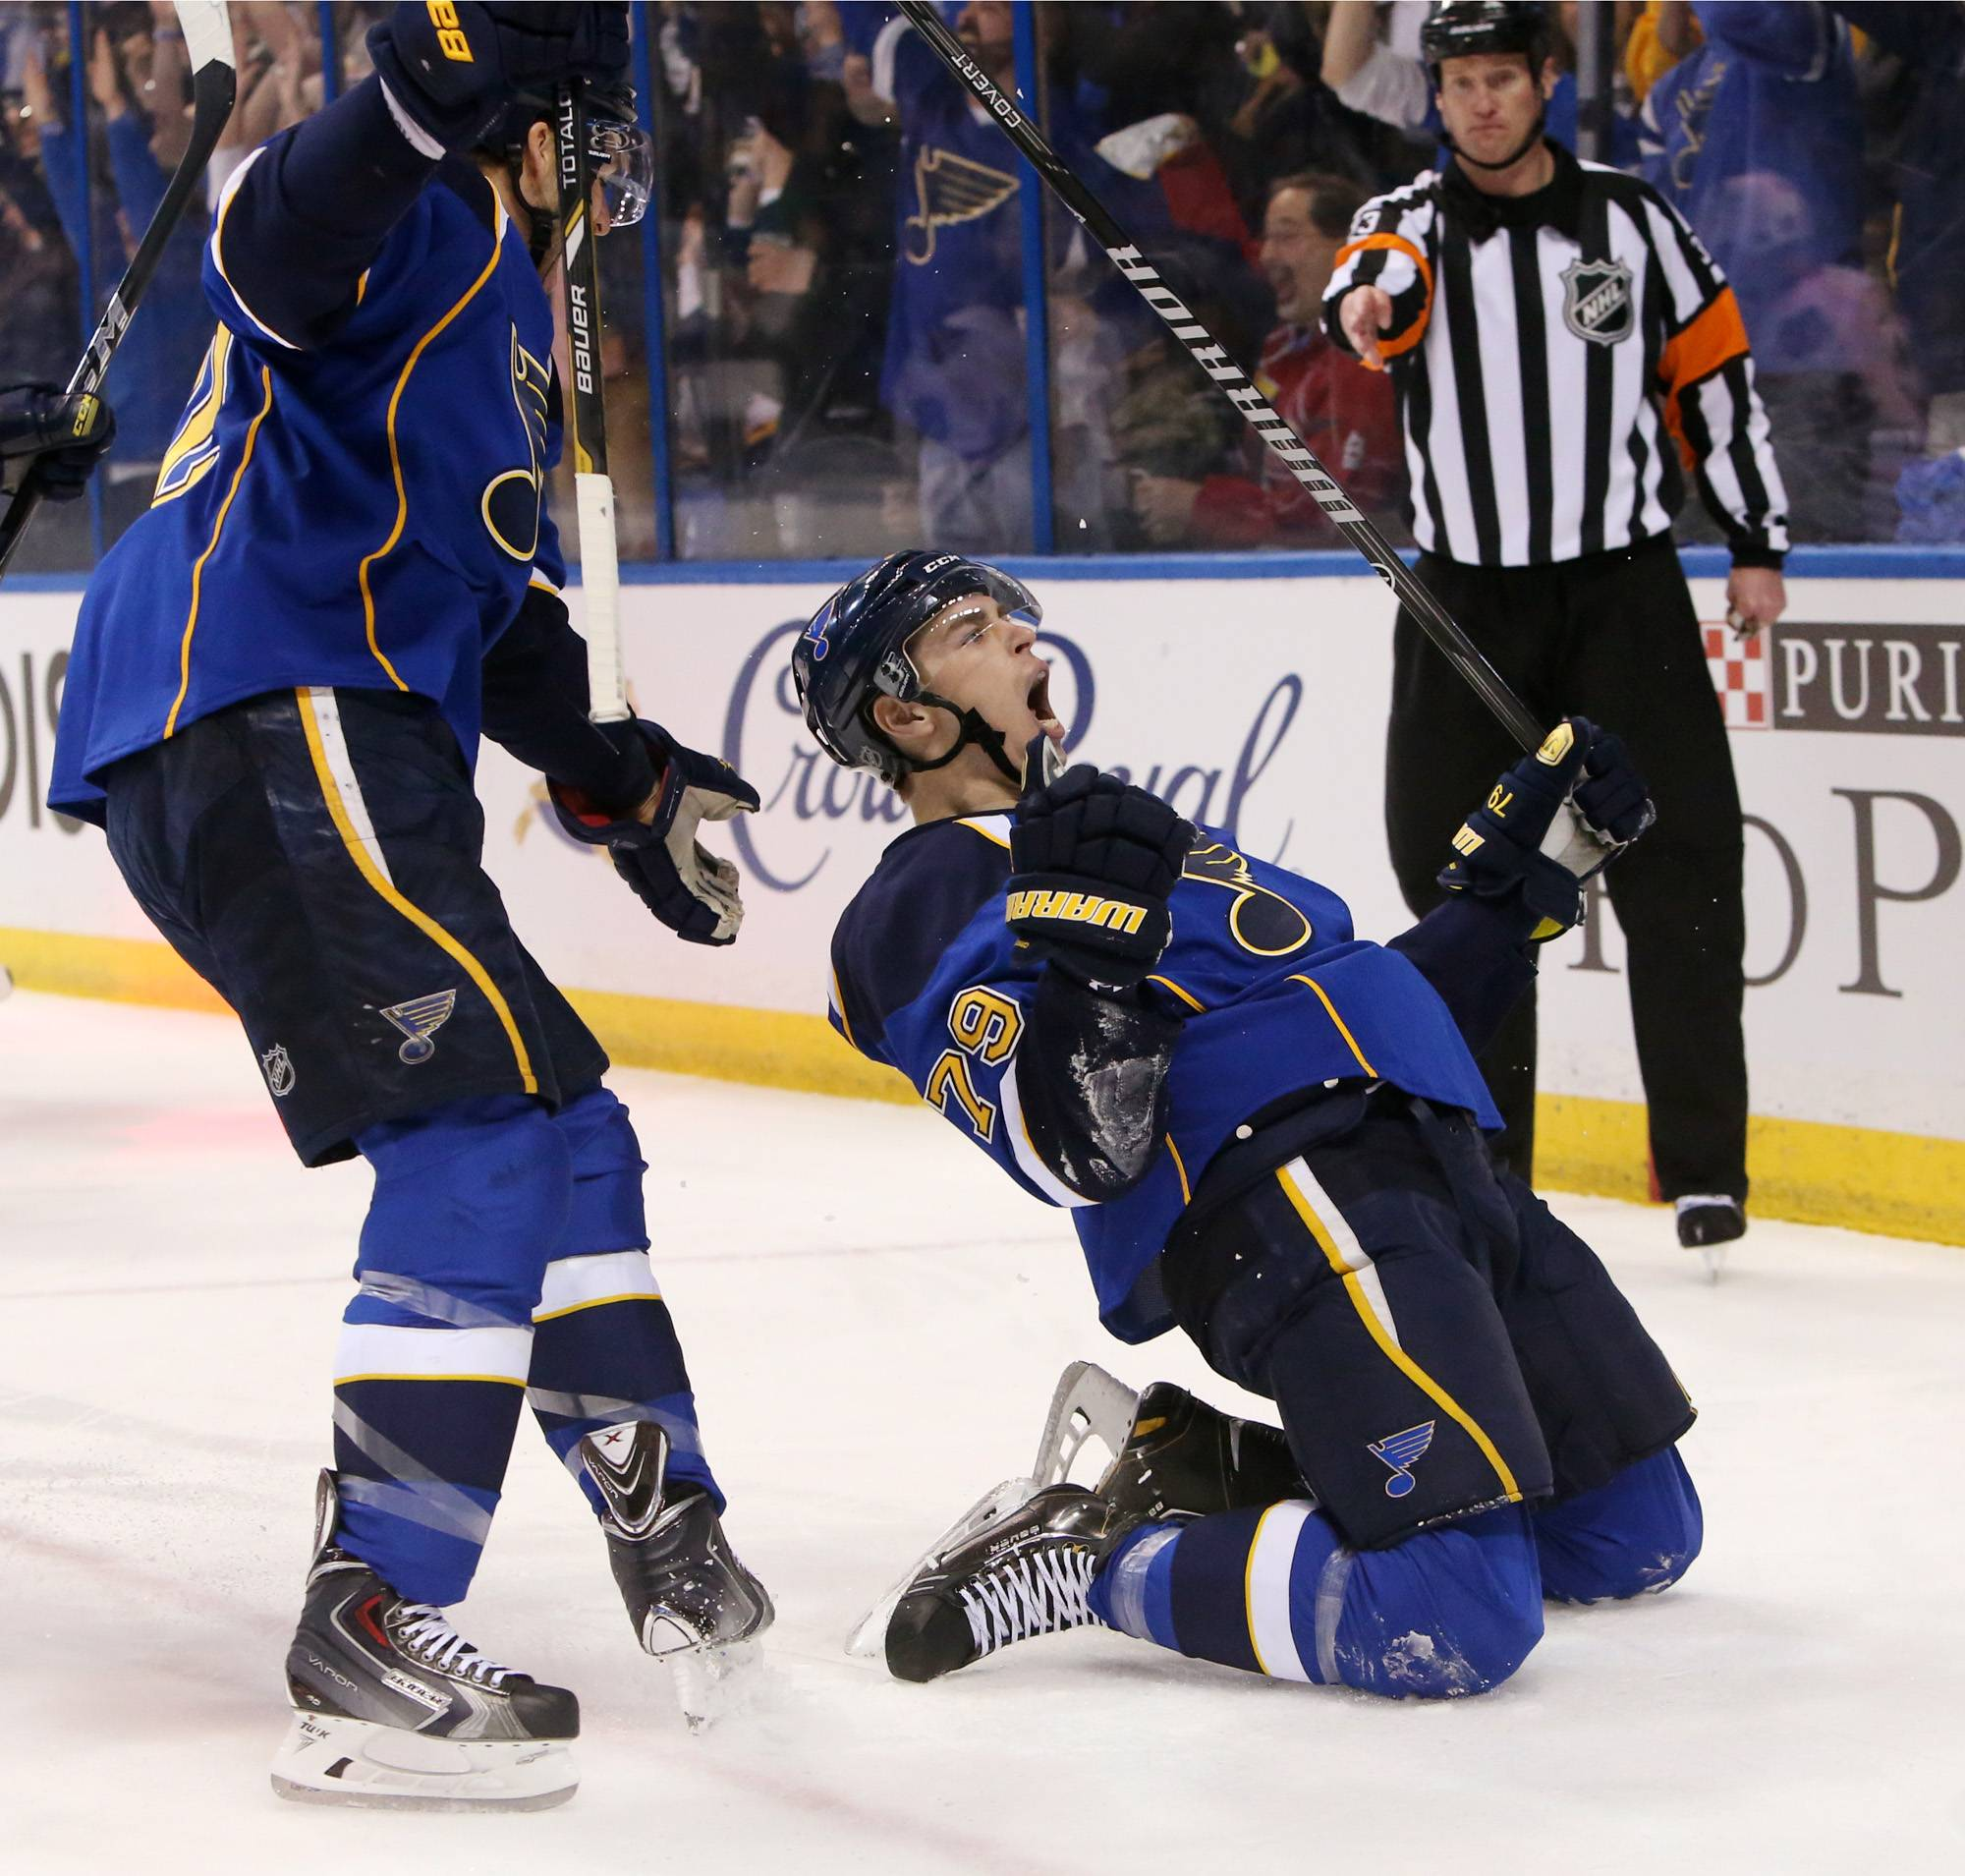 St. Louis Blues right wing Adam Cracknell, right, reacts after scoring against the Chicago Blackhawks during the first period .